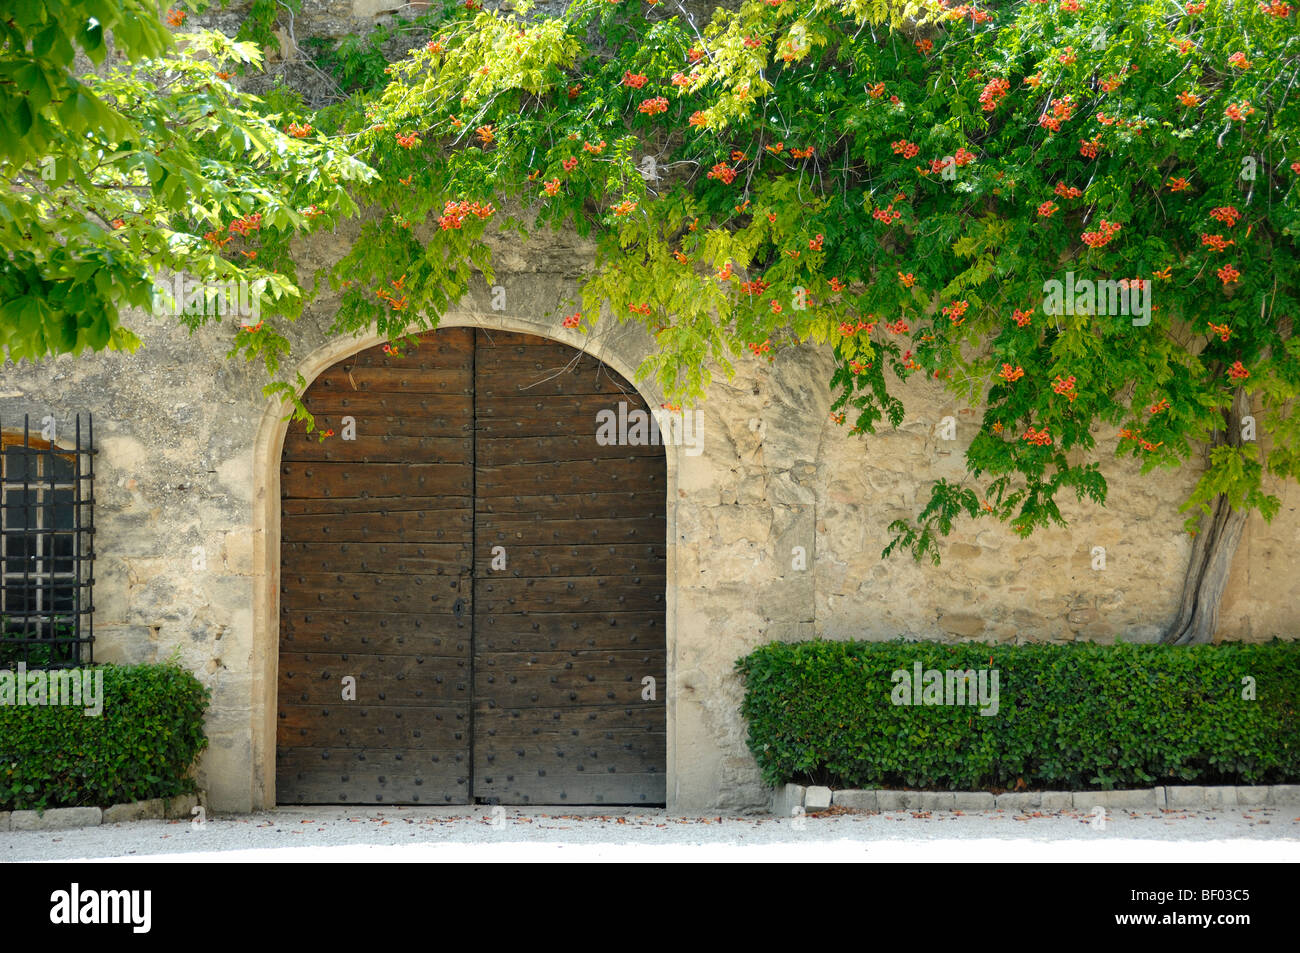 Trumpet Vine or Creeper Growing Around Old Garage Door at Ansouis Castle or Château Luberon Regional Park Provence - Stock Image